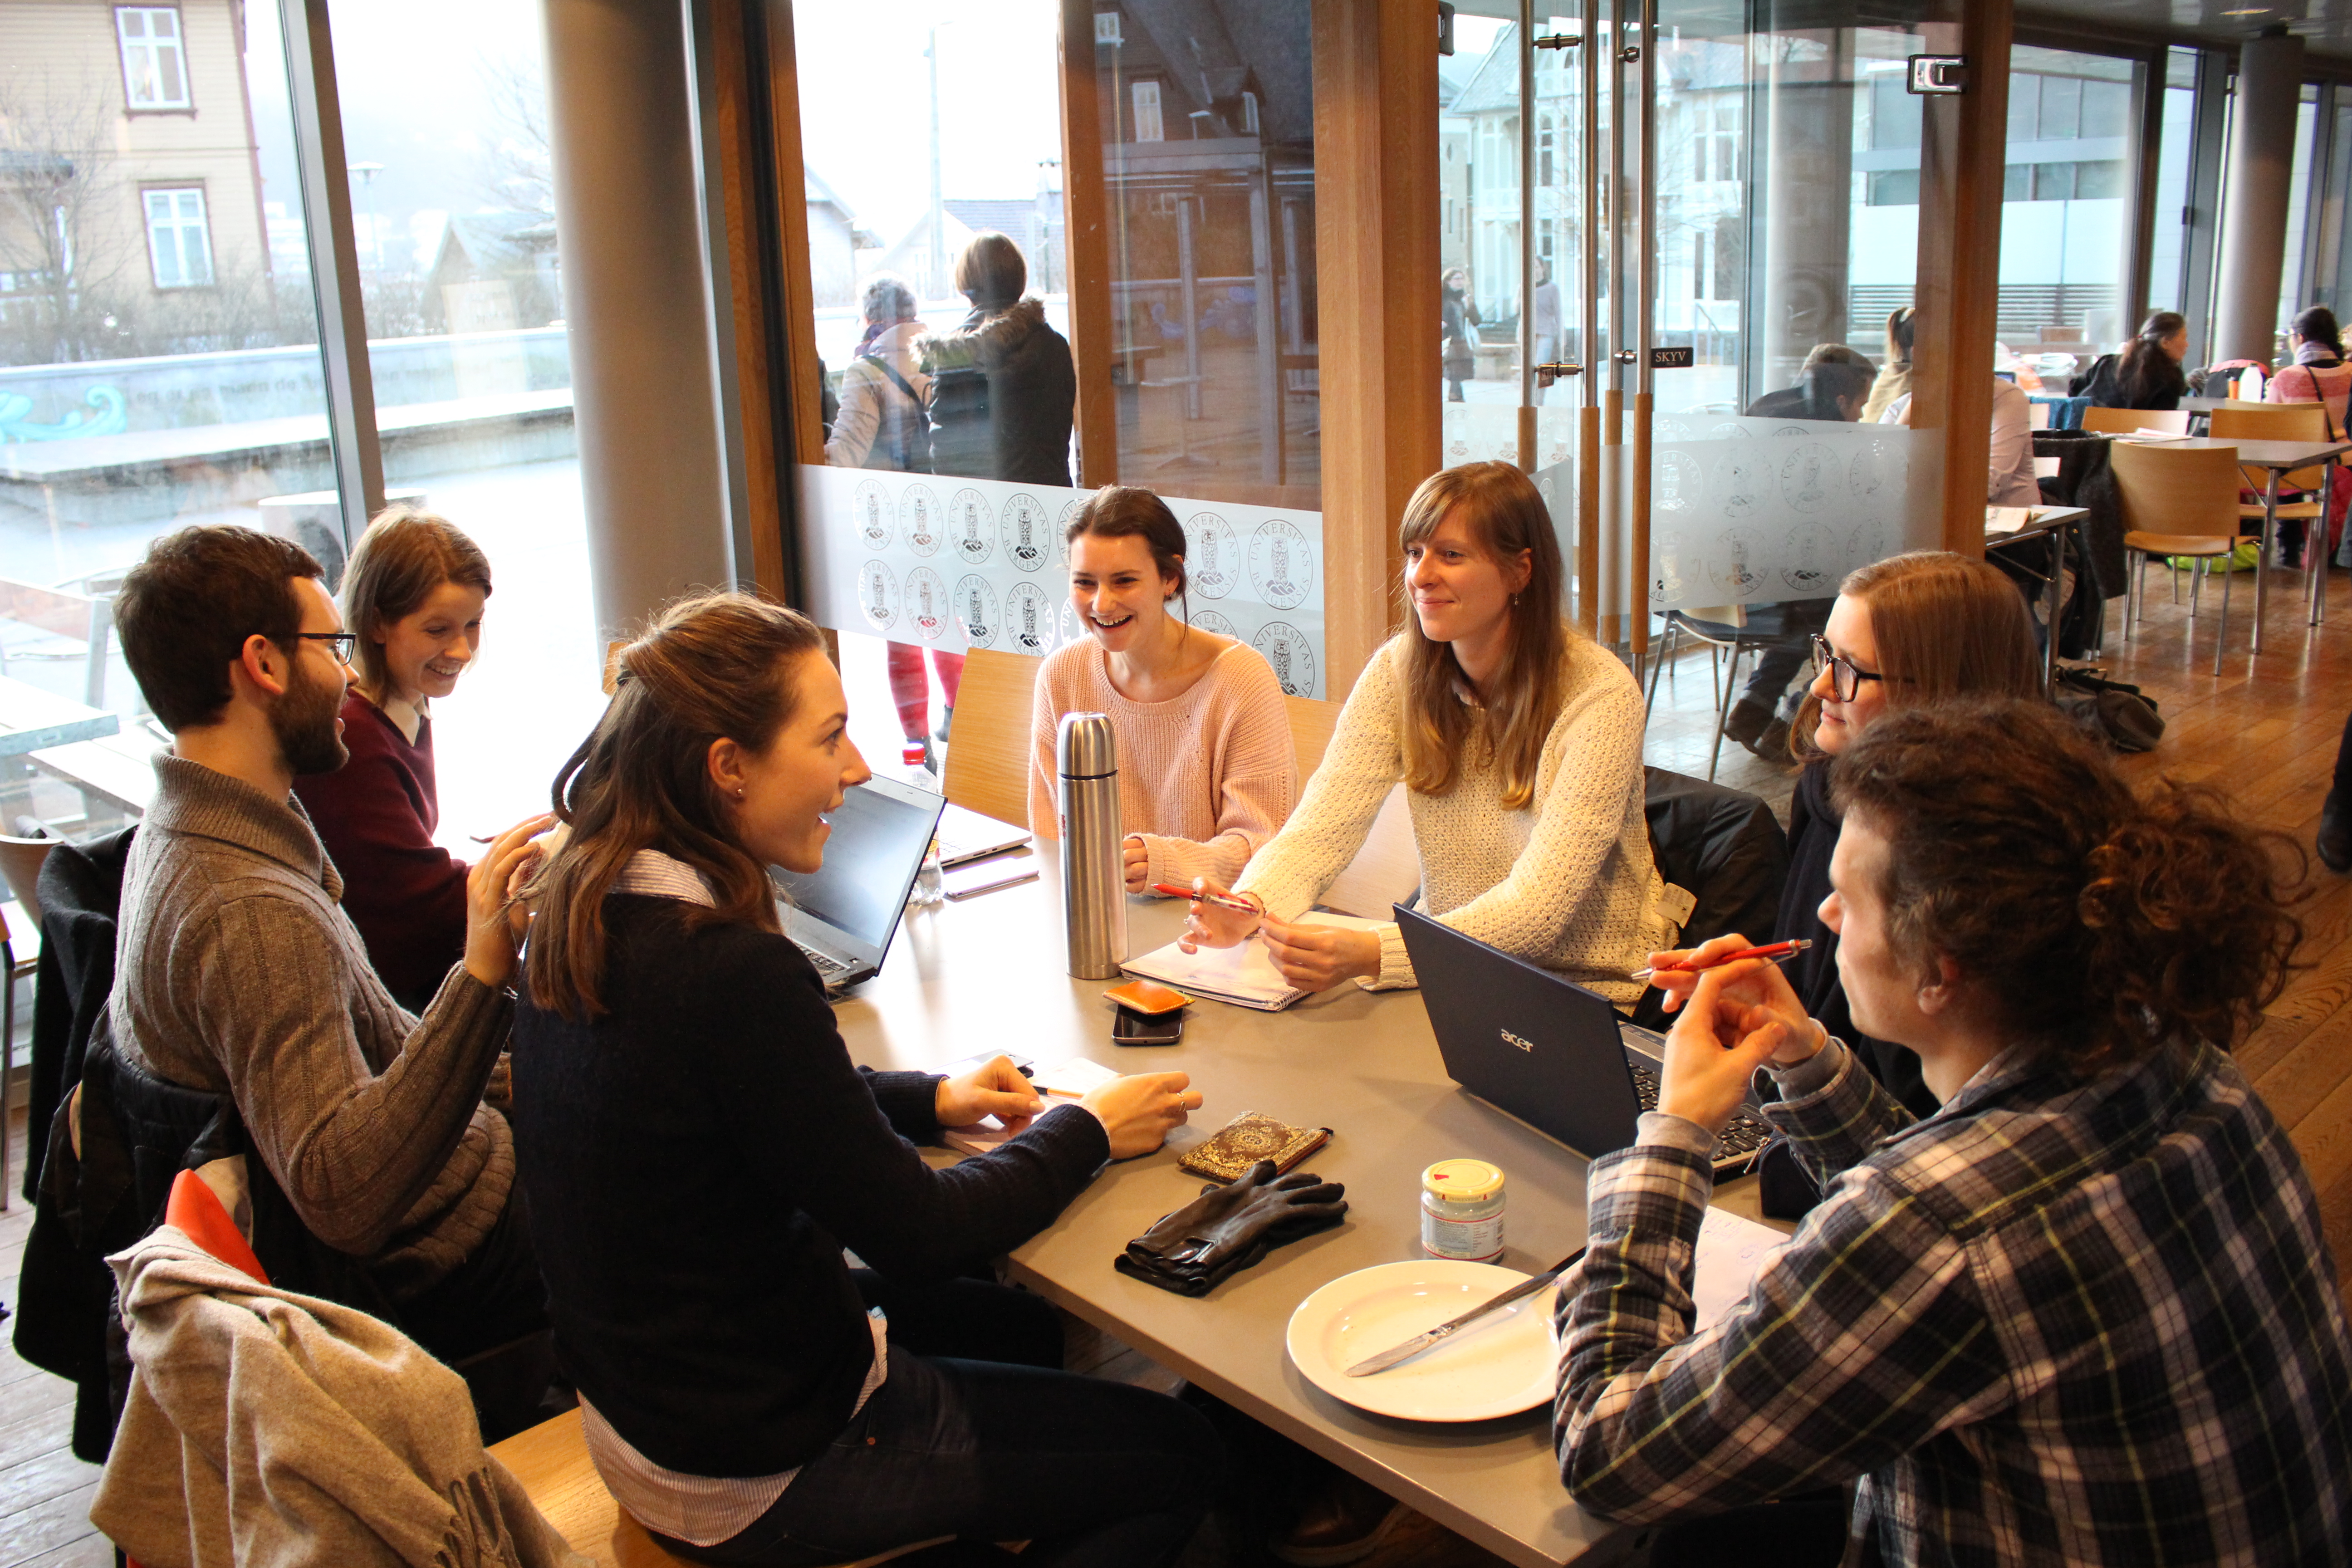 Round table discussion students - Meeting In January 2017